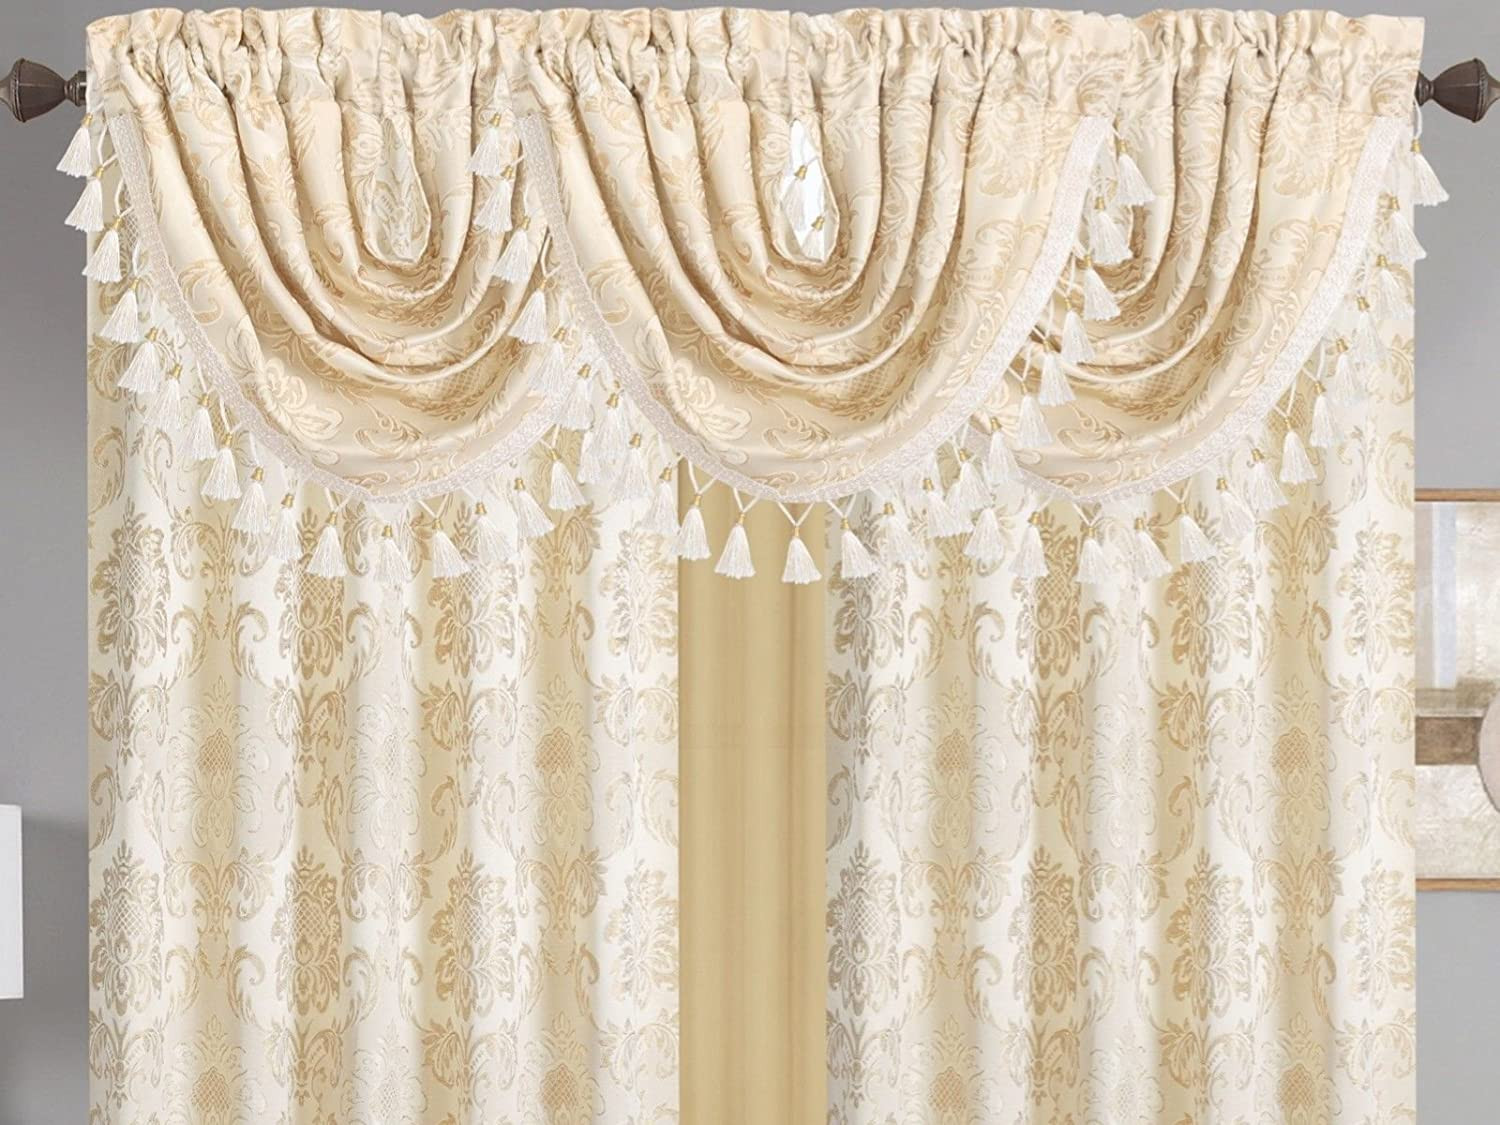 "Empire Home Traditional Jacquard Olivia Window Curtain Panel / Valance Drapery - NEW ARRIVAL (84"" Standard Panel, Beige / Gold)"